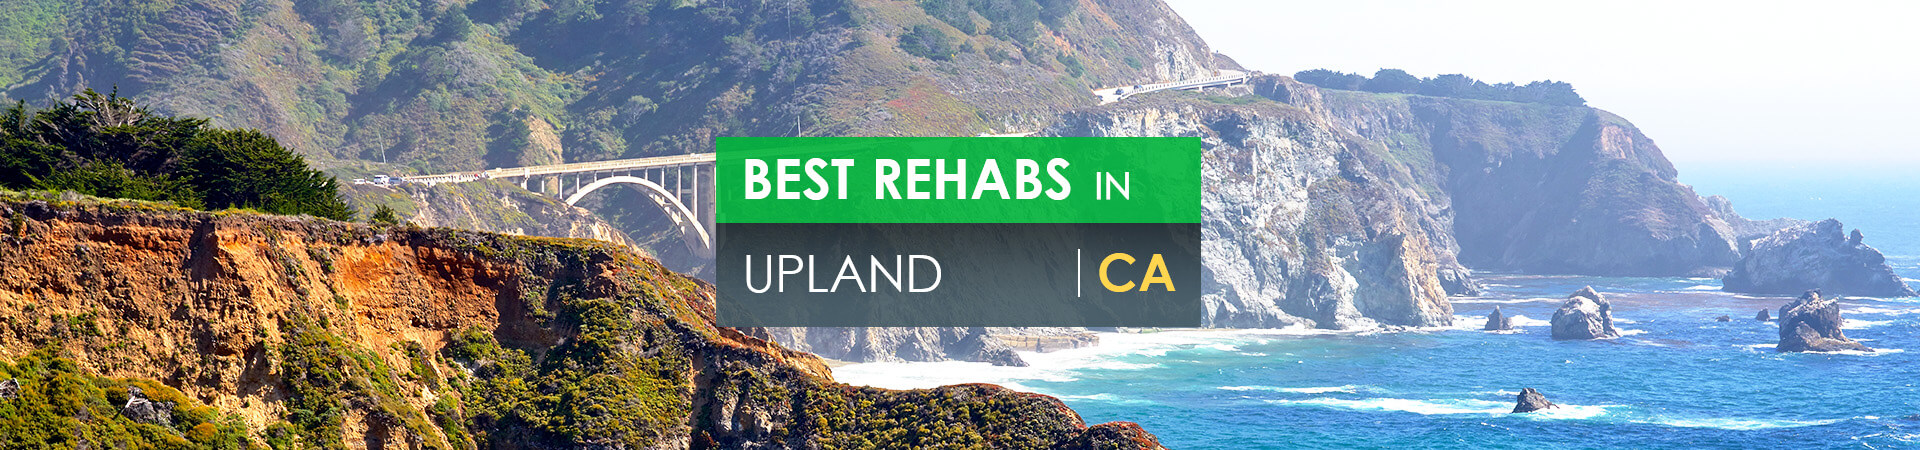 Best rehabs in Upland, CA